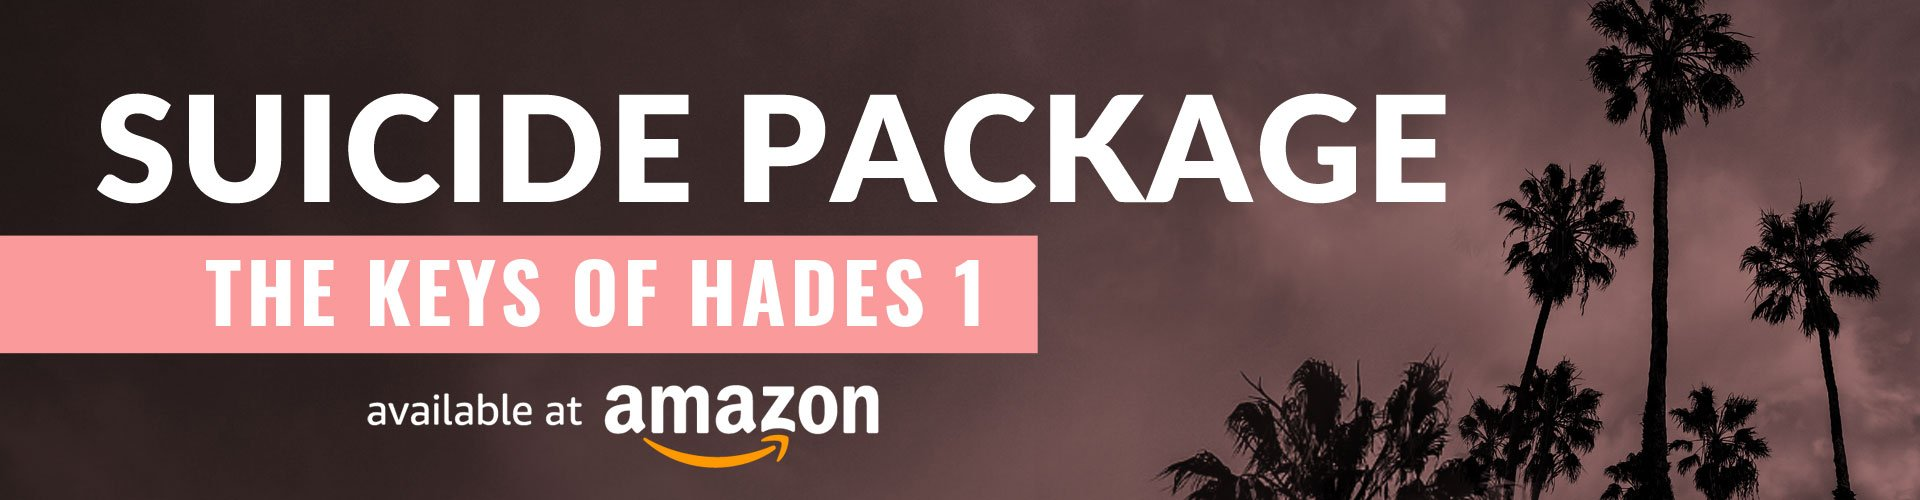 Suicide Package - The Keys of Hades 1